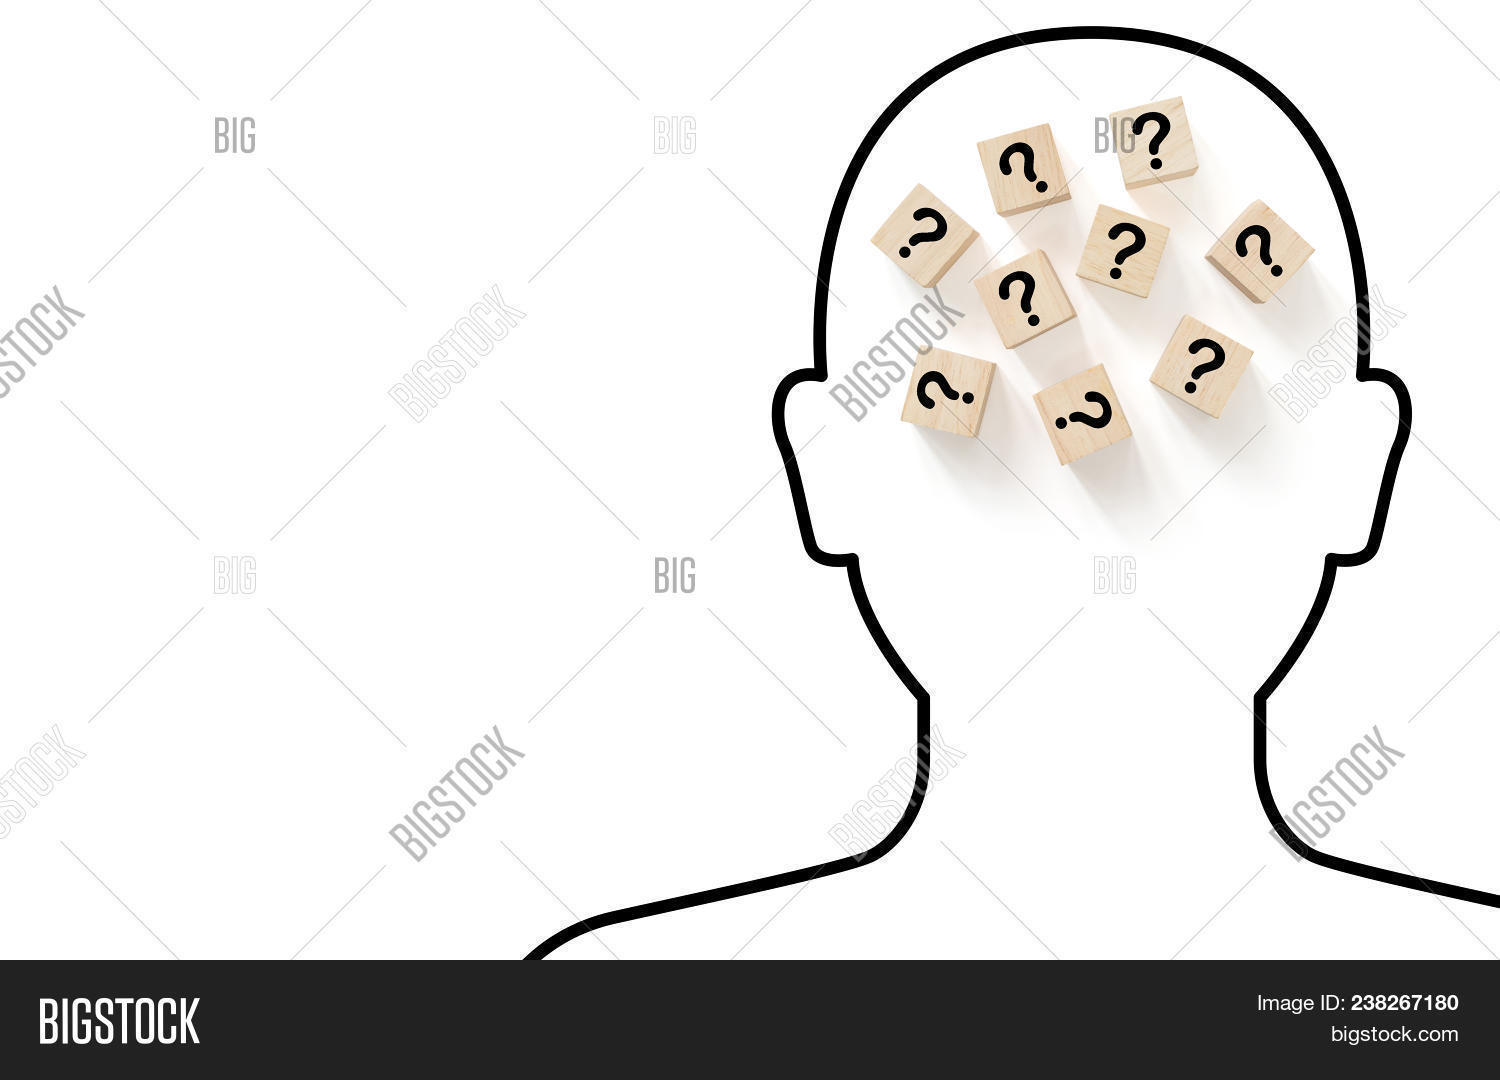 Human head drawing outline black color on white background with wooden block shape and question mark alphabet inside head, Thinking concept